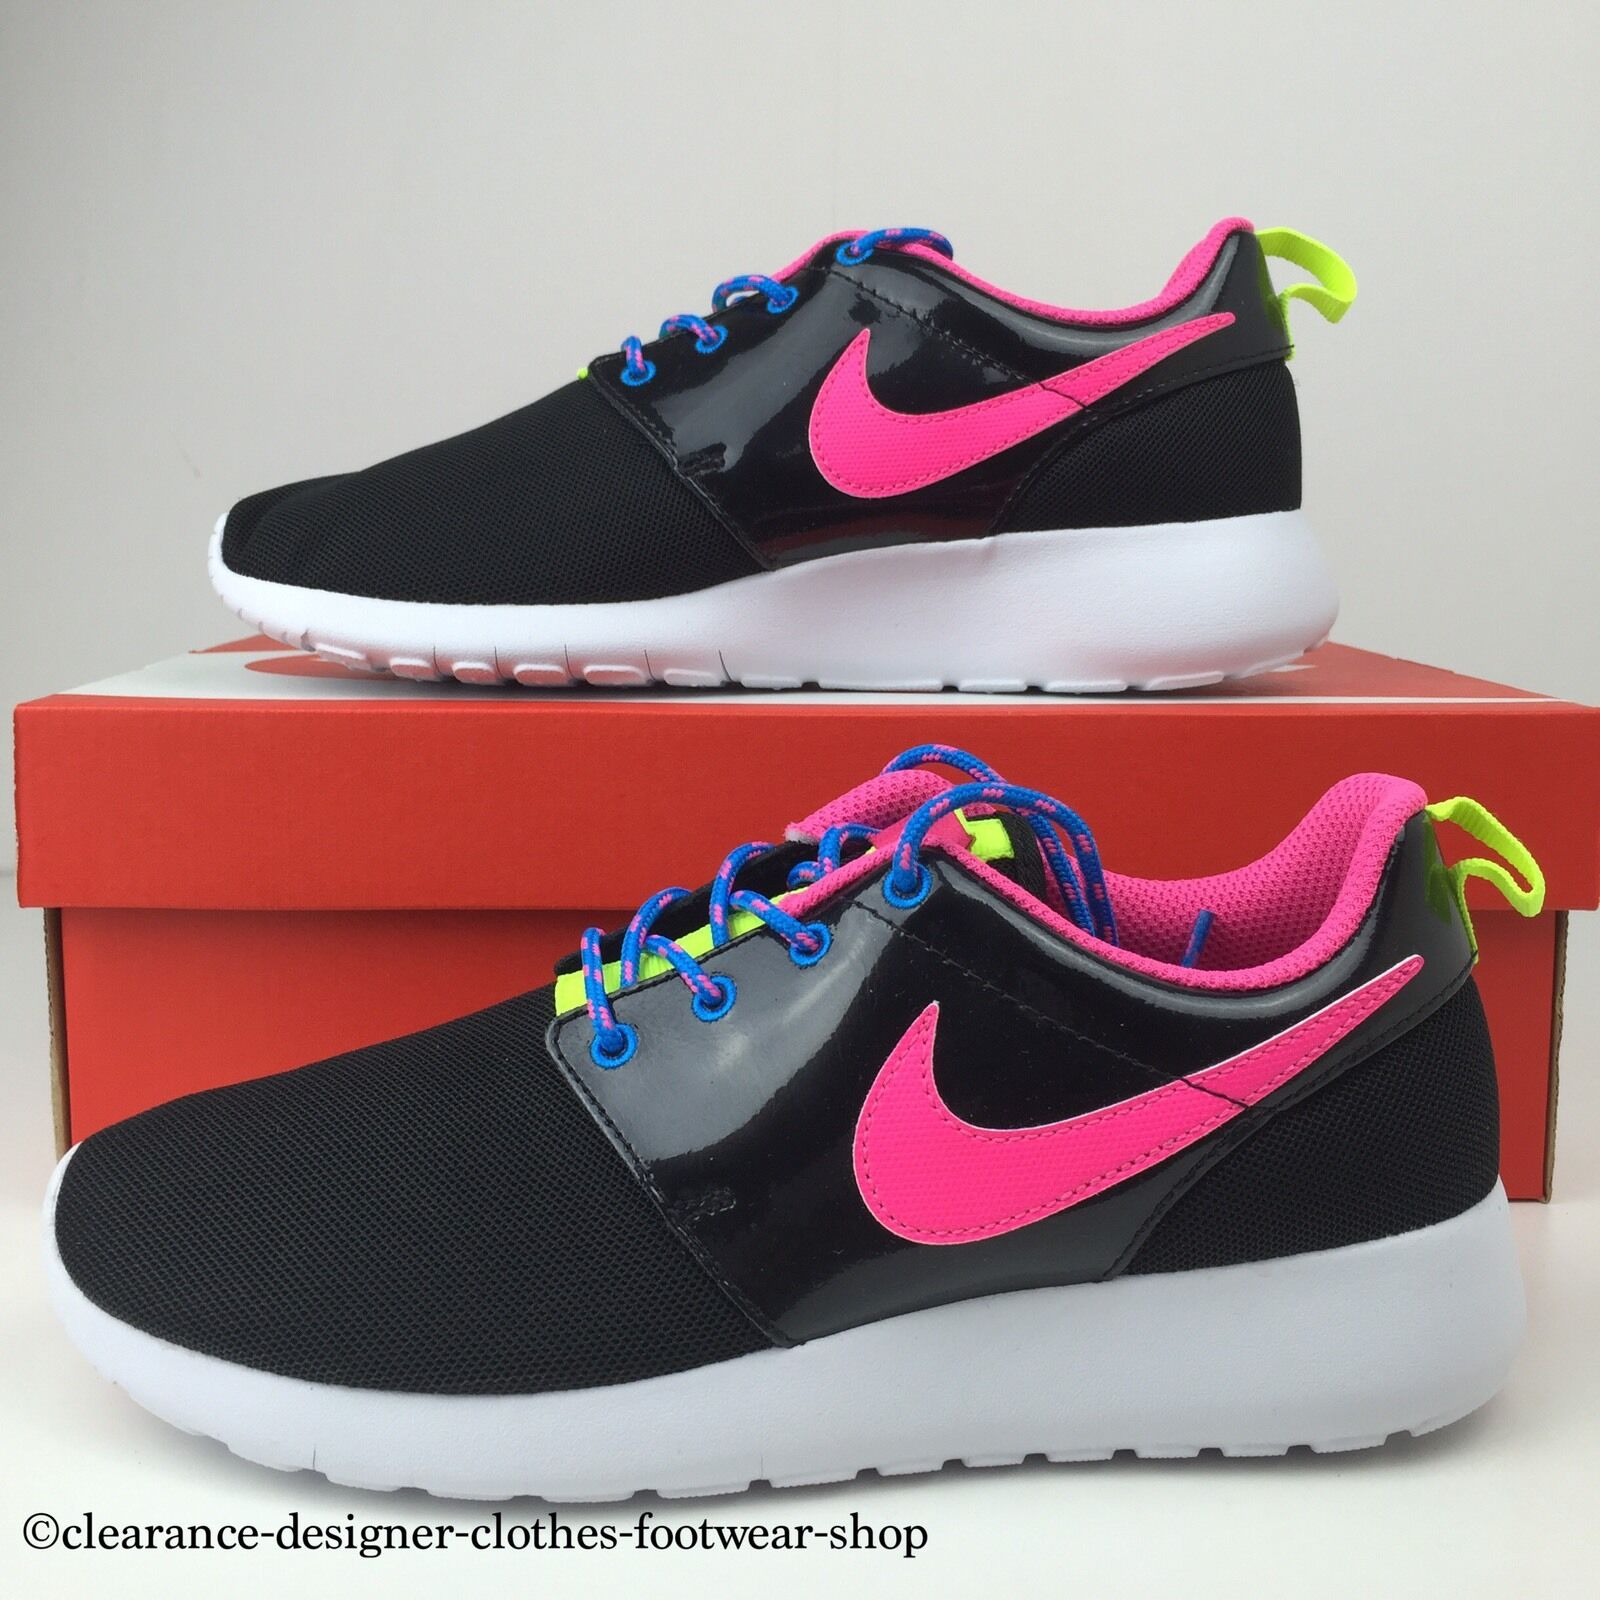 c3cdbff639e8 NIKE ROSHE ROSHE ROSHE ONE GS TRAINERS ROSHE RUN BLACK PINK WOMENS GIRLS GYM  SHOES RRP 3e1f79